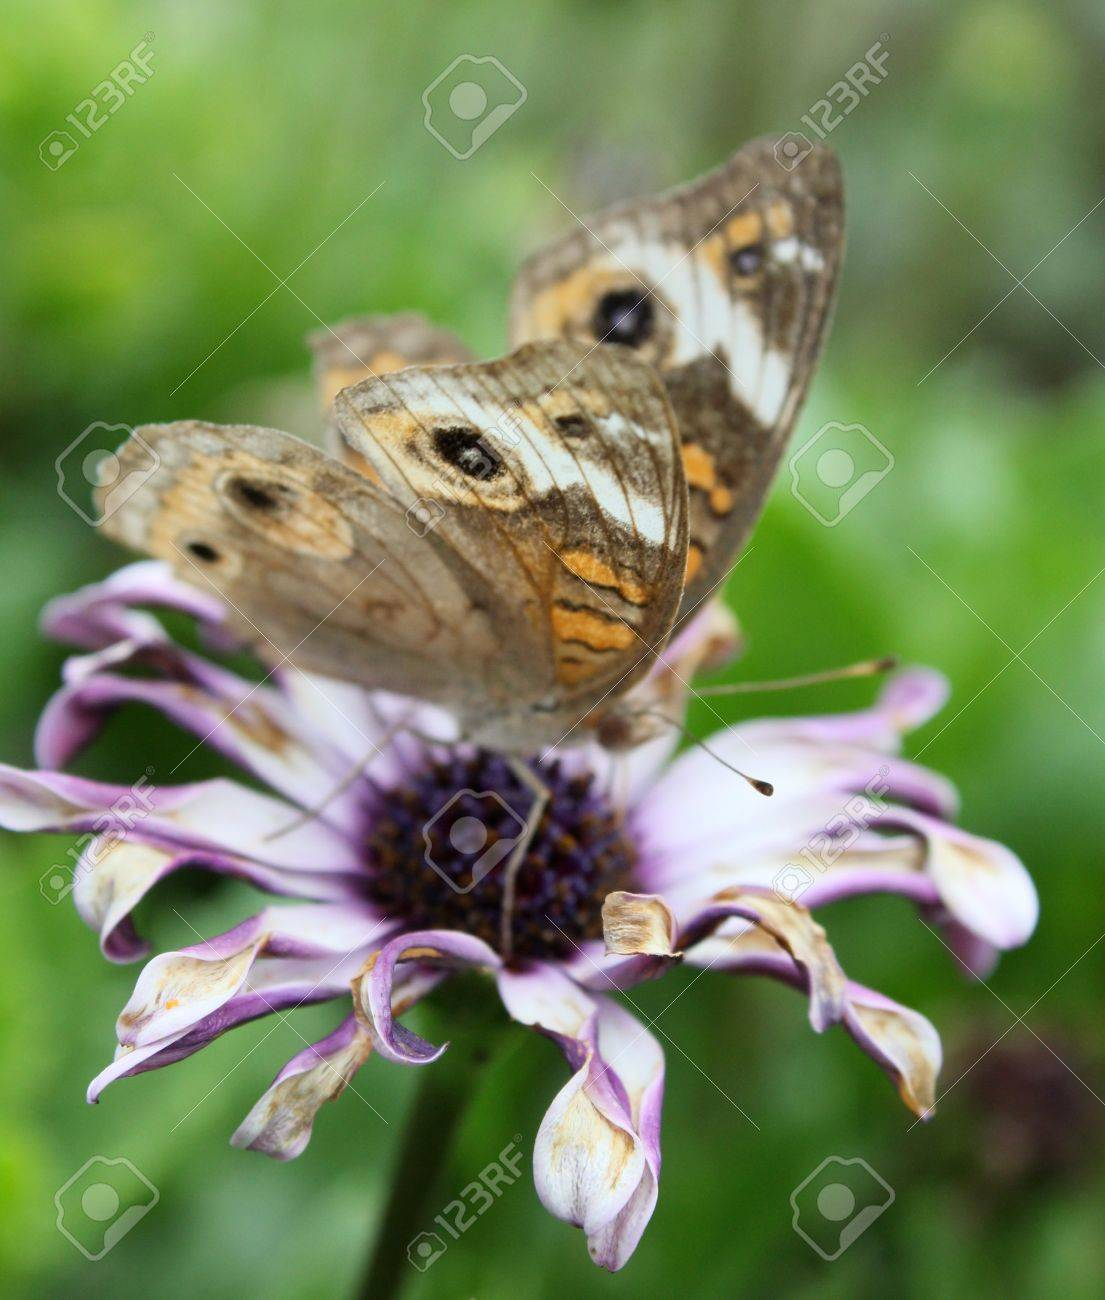 Faded buckeye butterfly on a fading flower. Stock Photo - 11241291